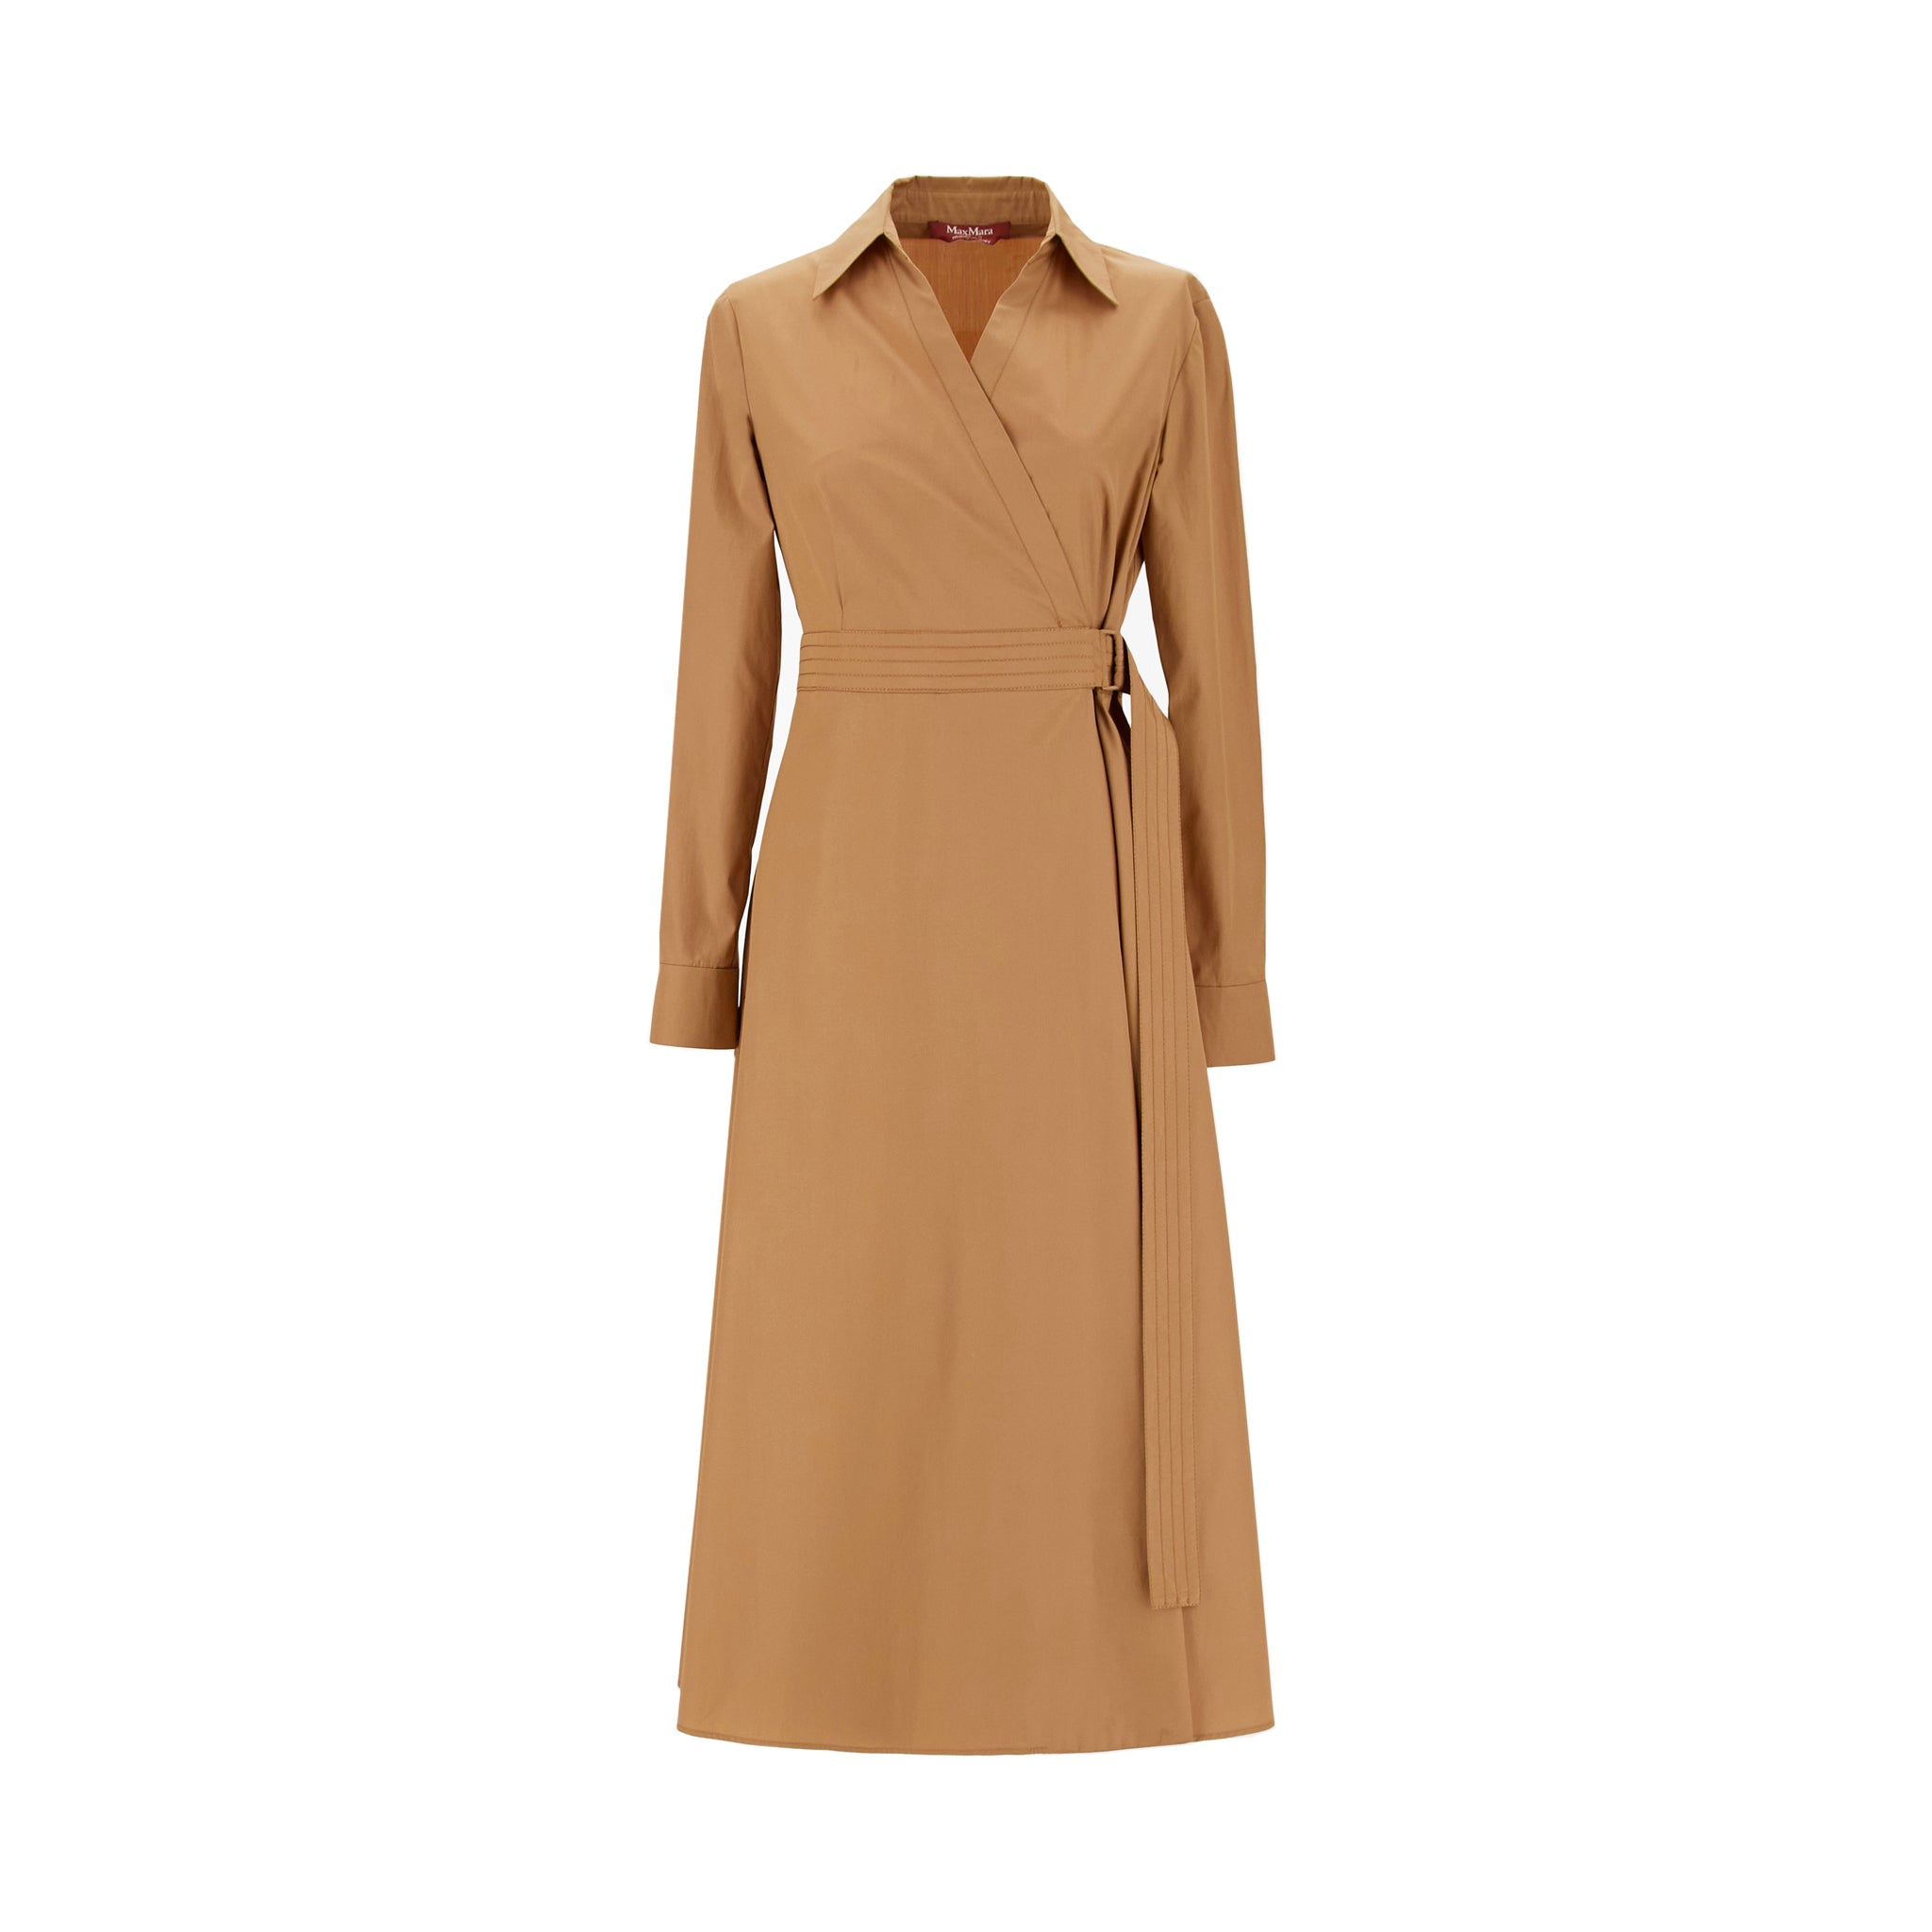 Max Mara Studio Jack Cotton Poplin Dress